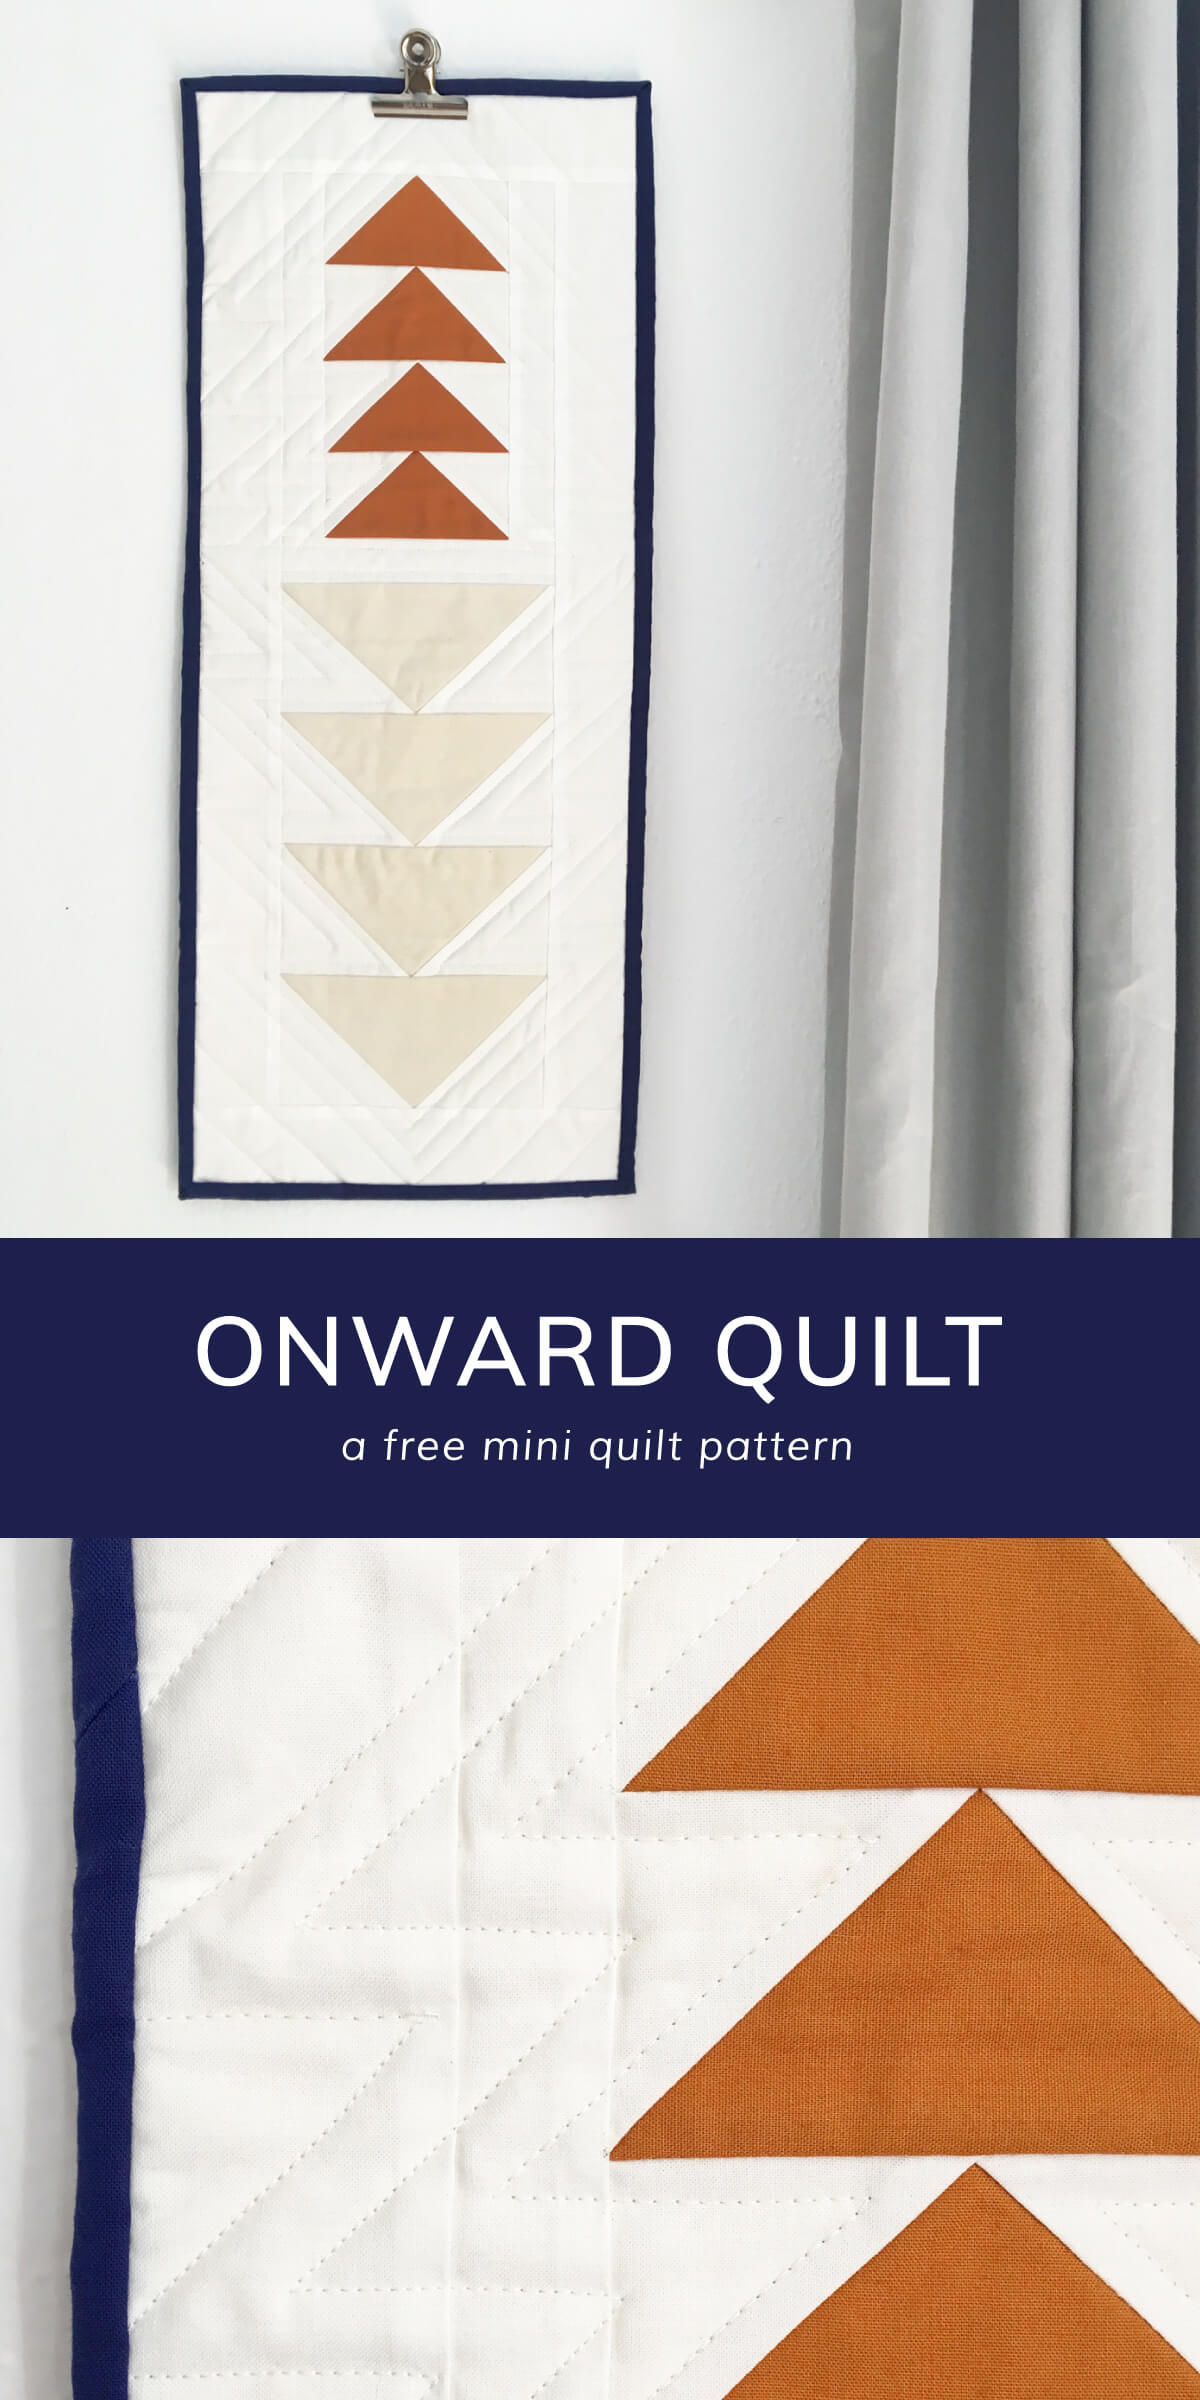 Free Mini Quilt Pattern, a modern minimal flying geese quilt: Onward. by Cottonandjoy.com #freequiltpattern #quiltpattern #quilting